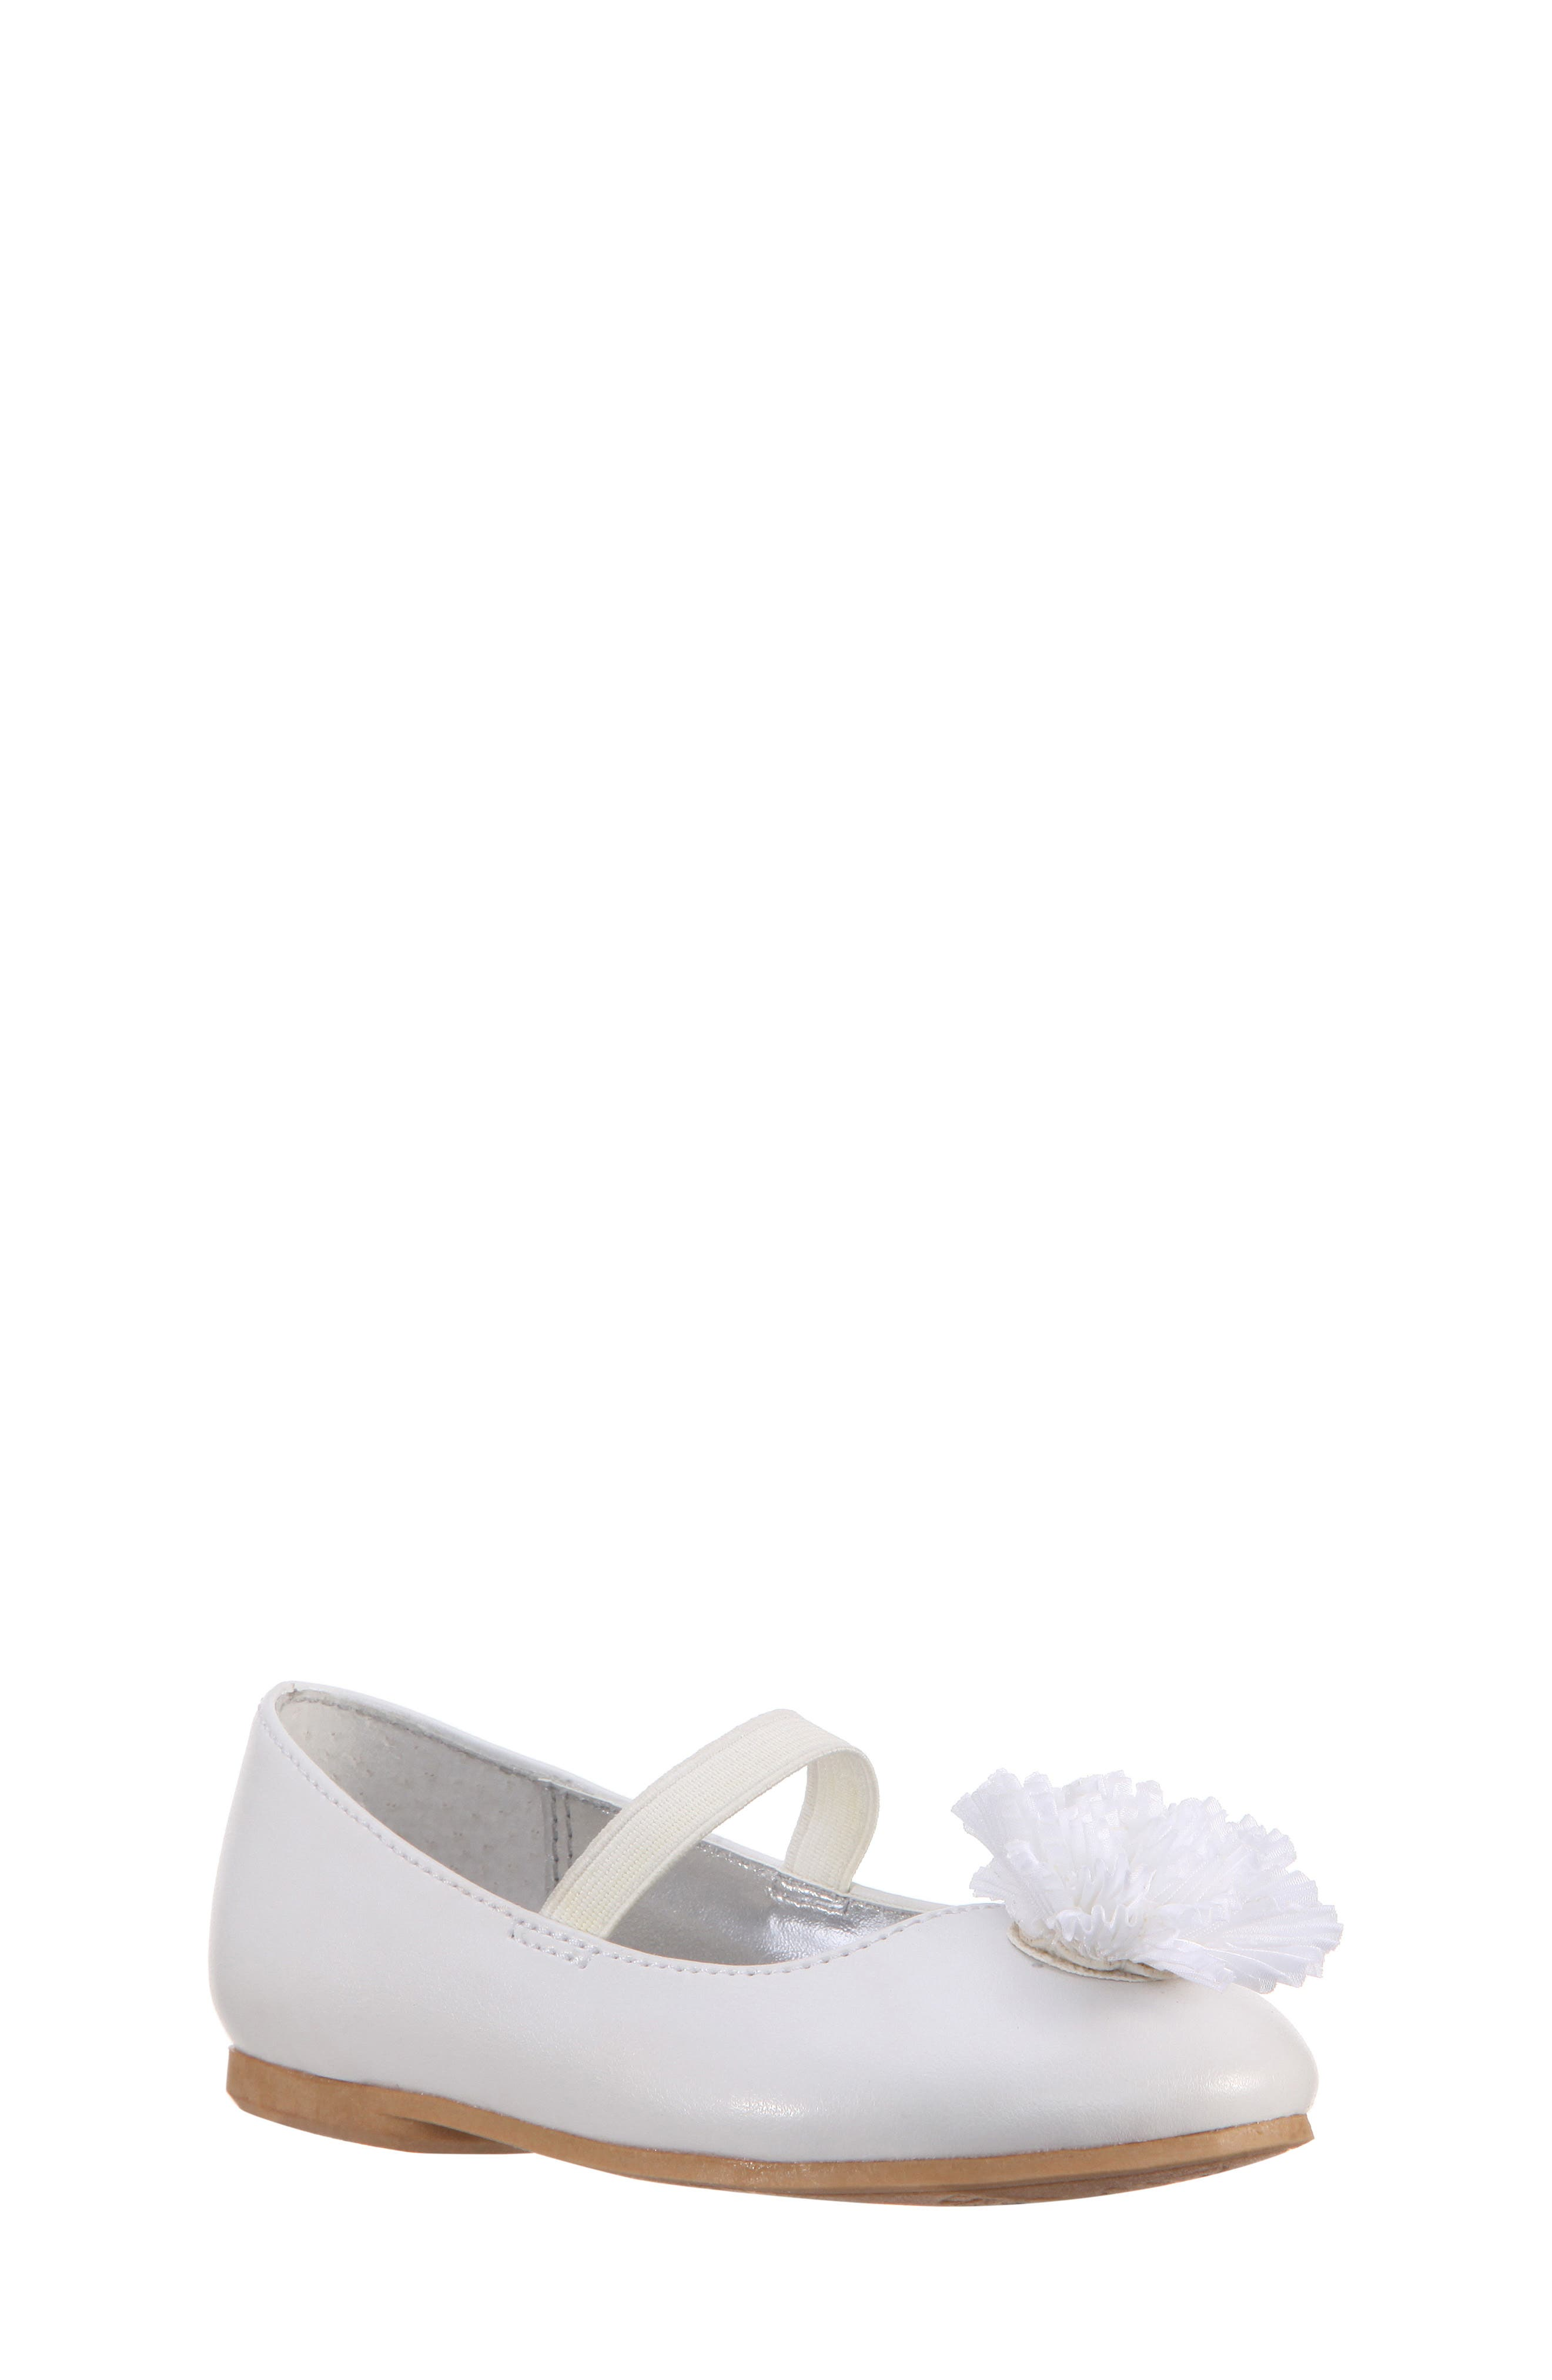 Jemma-T Bow Ballet Flat,                         Main,                         color, WHITE SMOOTH